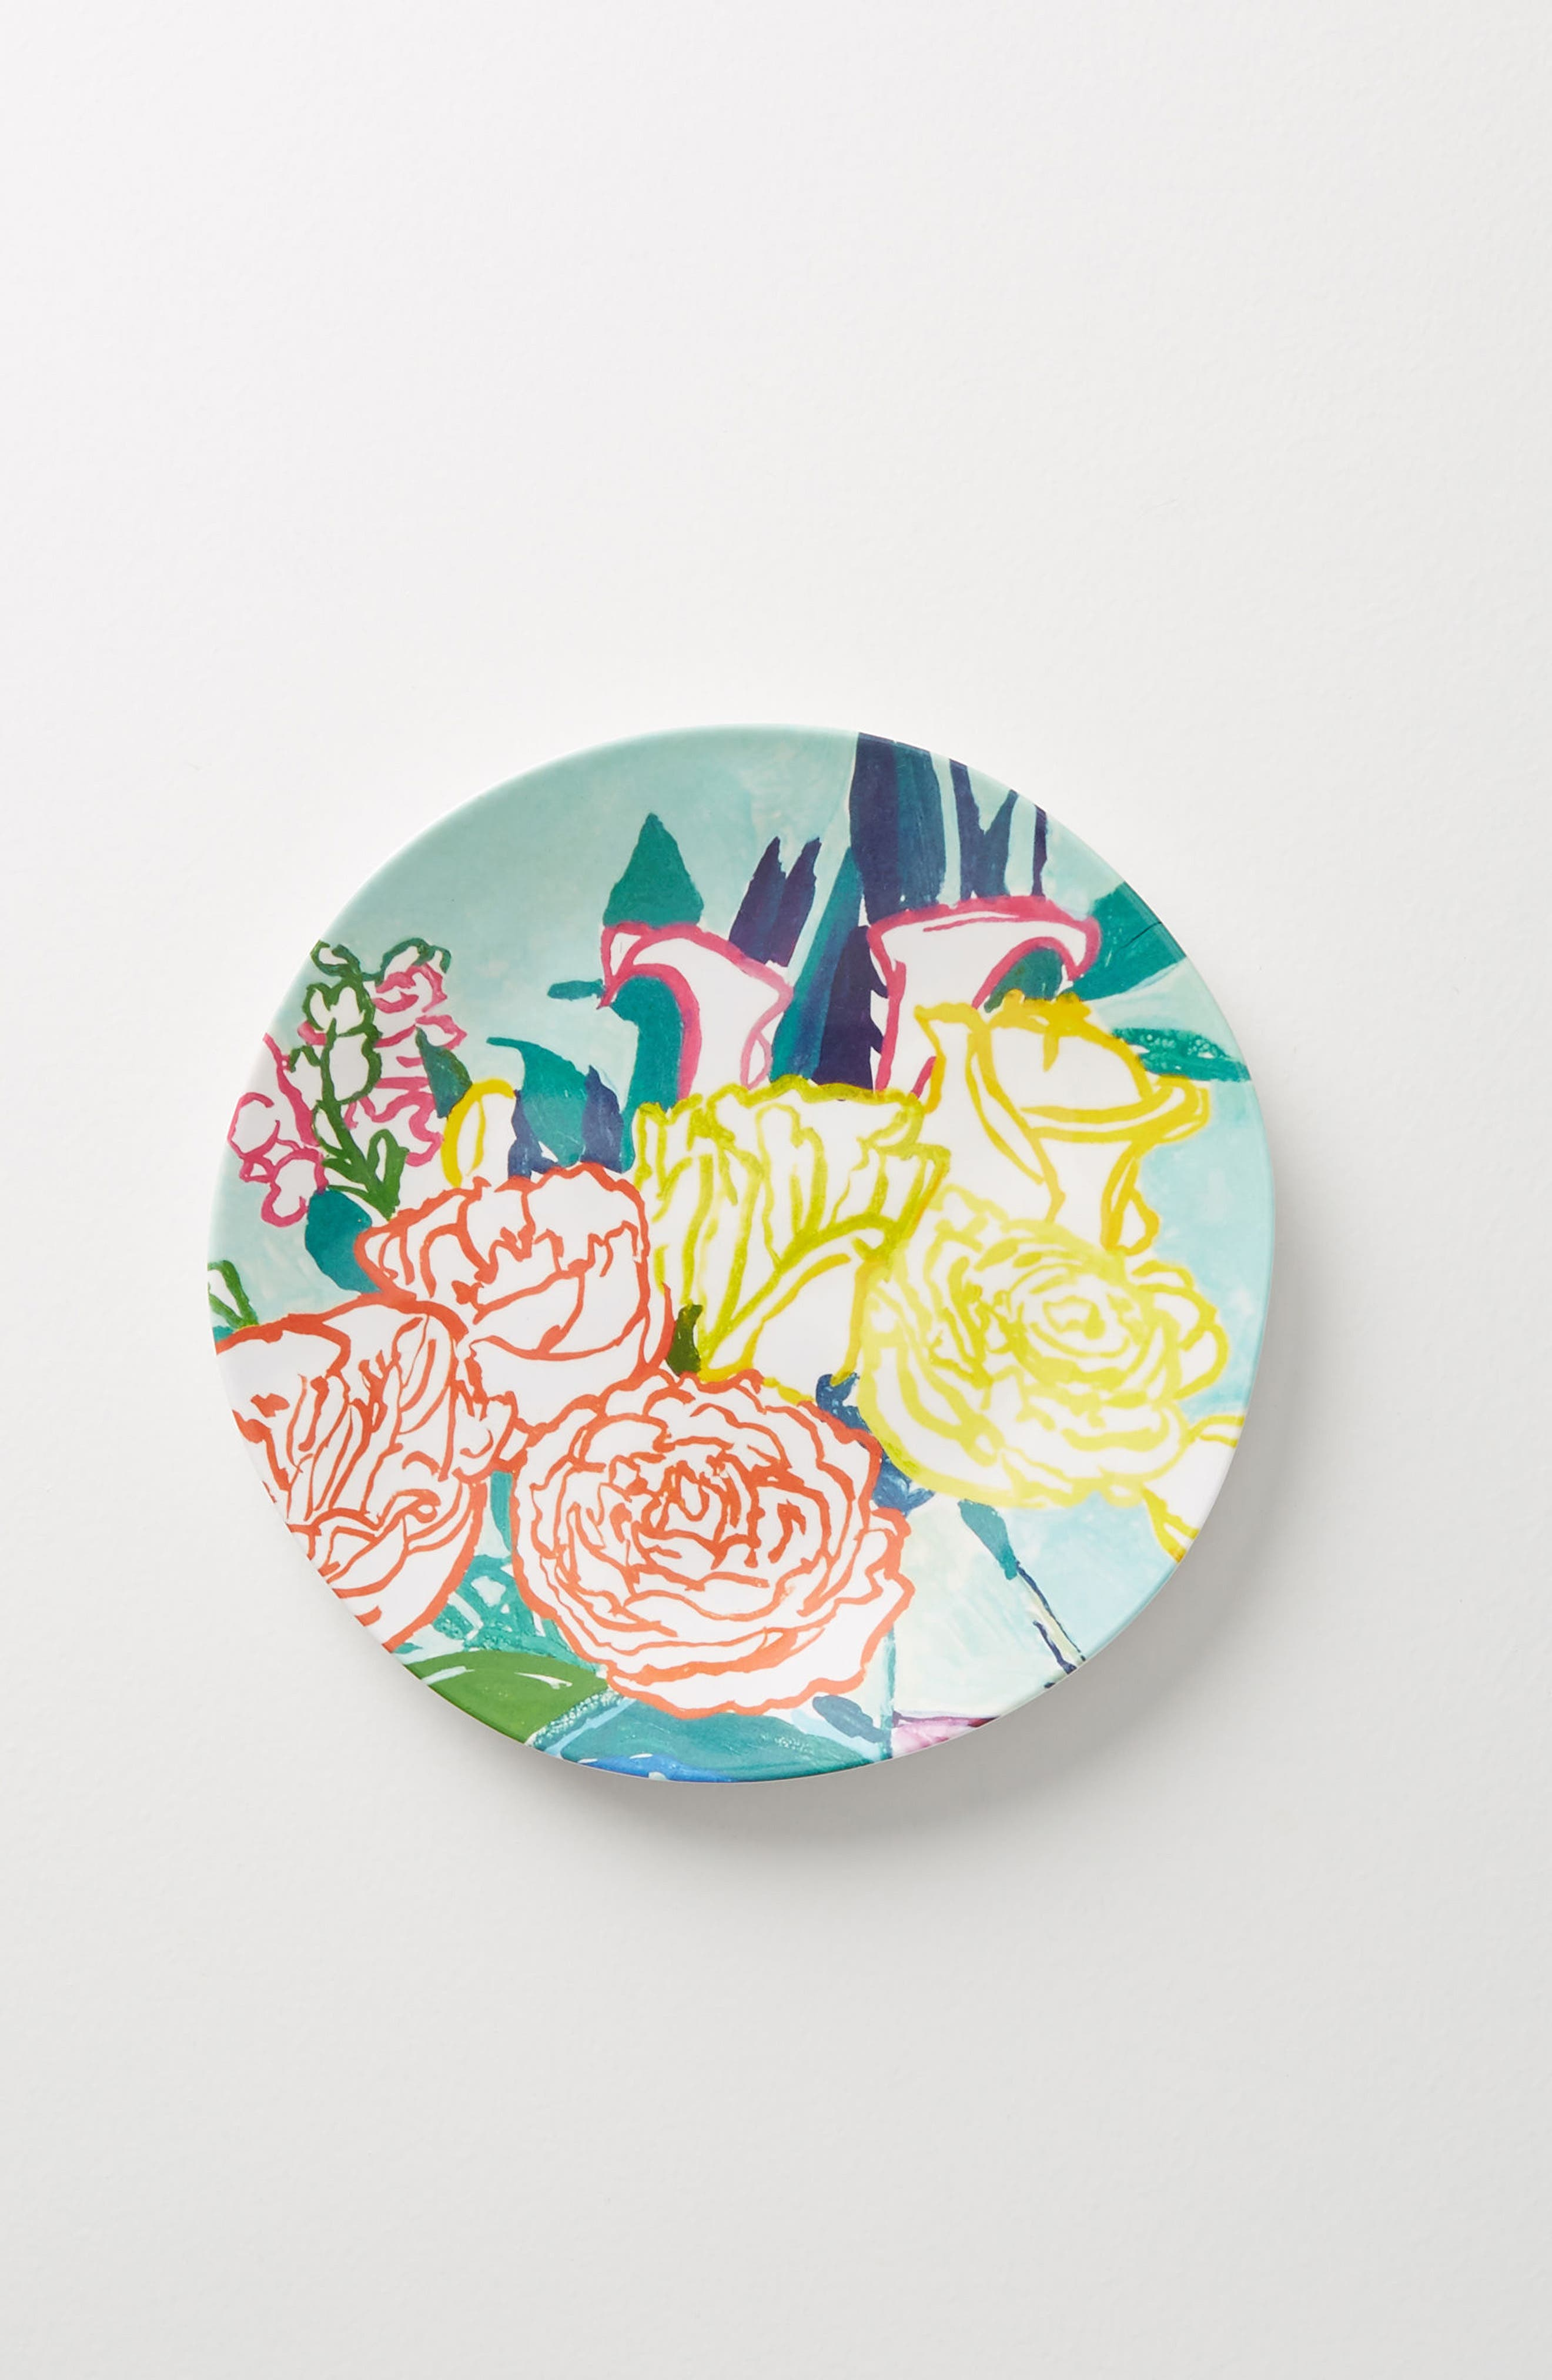 Paint + Petals Melamine Plate,                             Alternate thumbnail 2, color,                             Turquoise